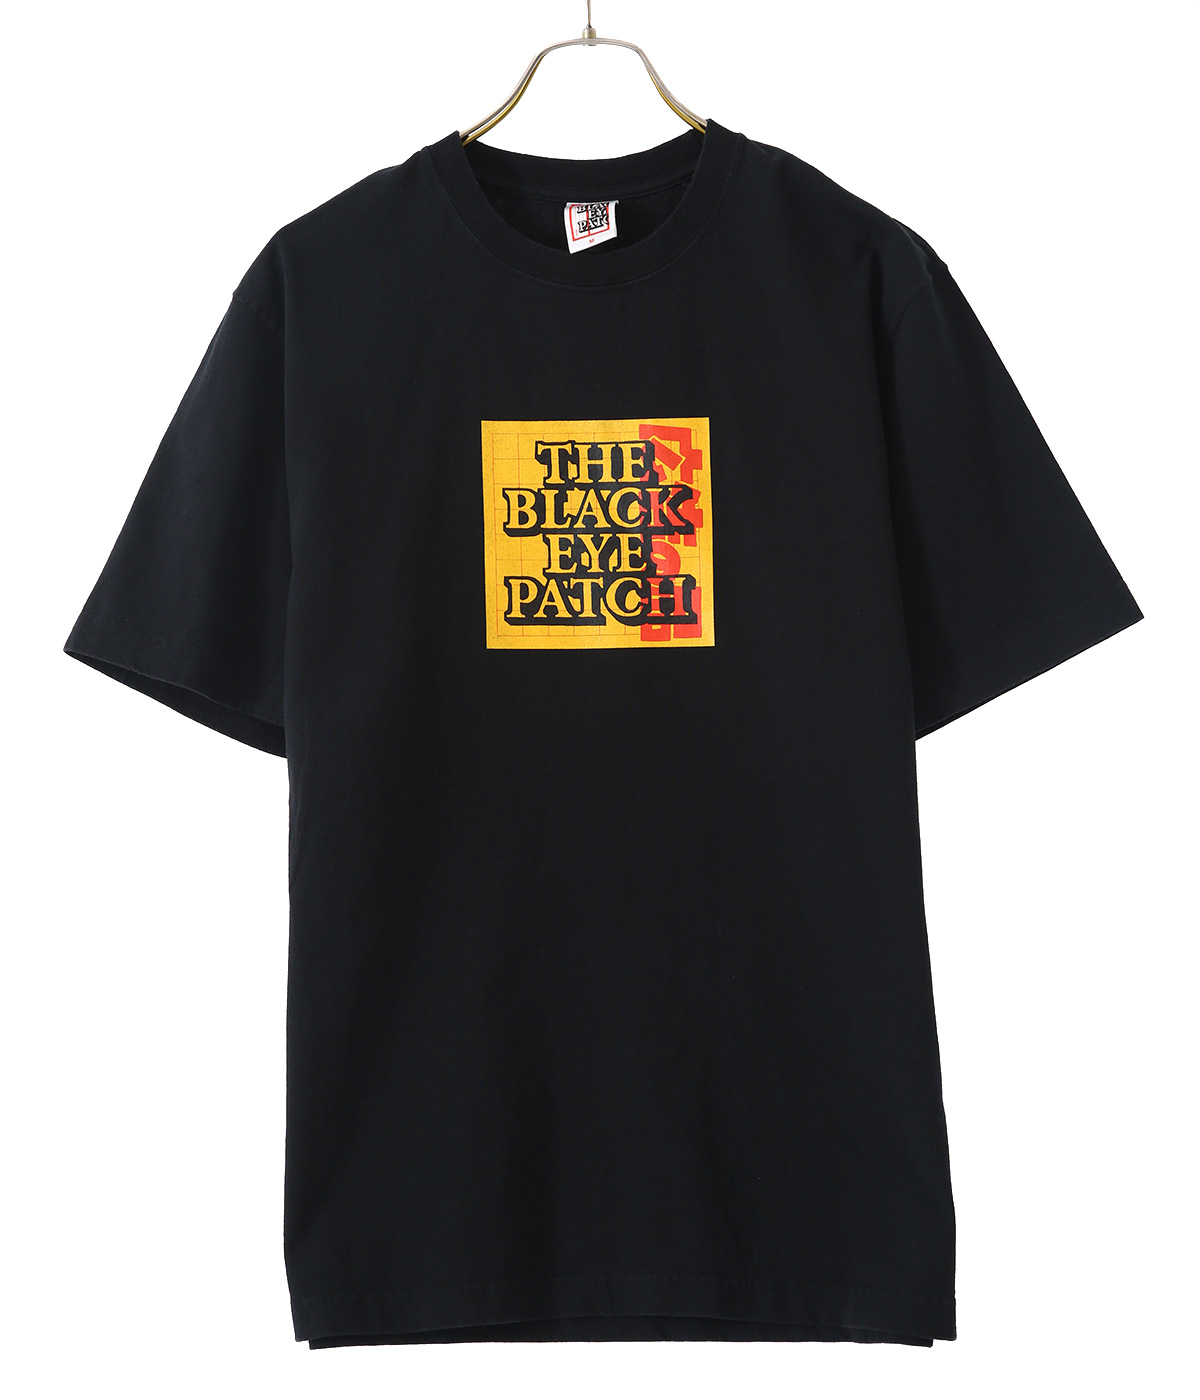 """AS ADVERTISED""LABEL TEE"